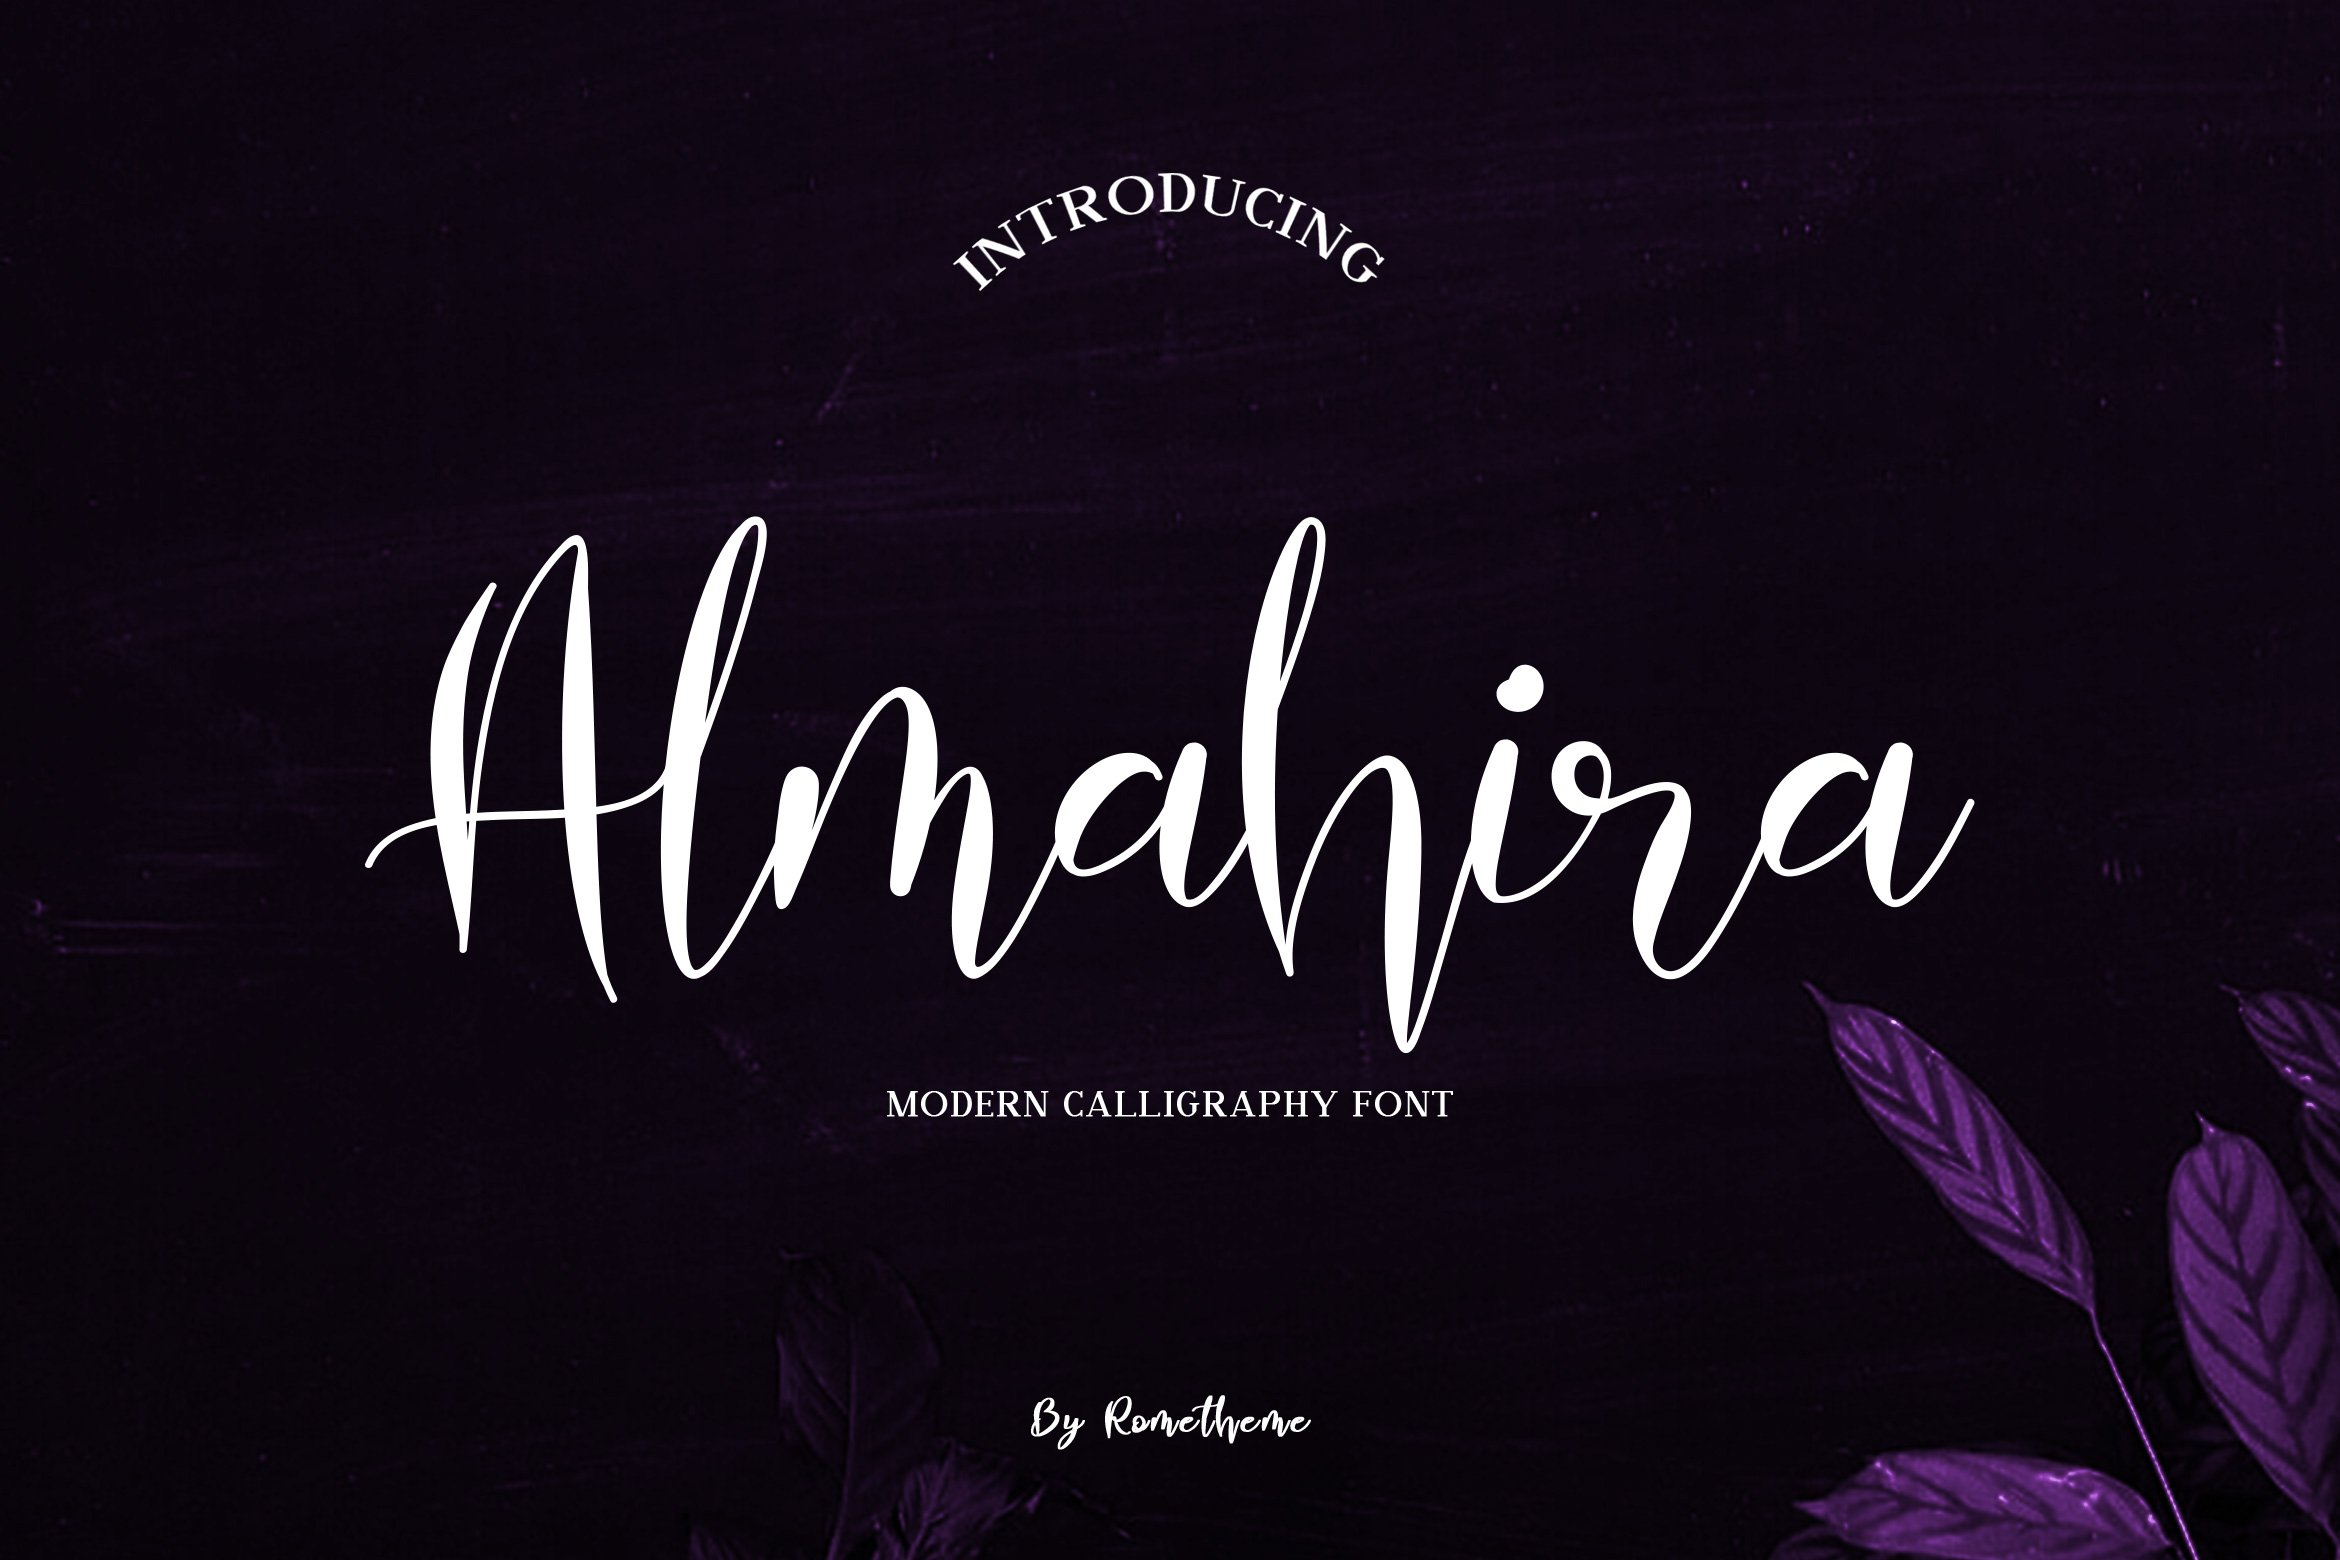 Playful Fonts - Exclusive Font Bundle - 30 Items for $15 - cover 4